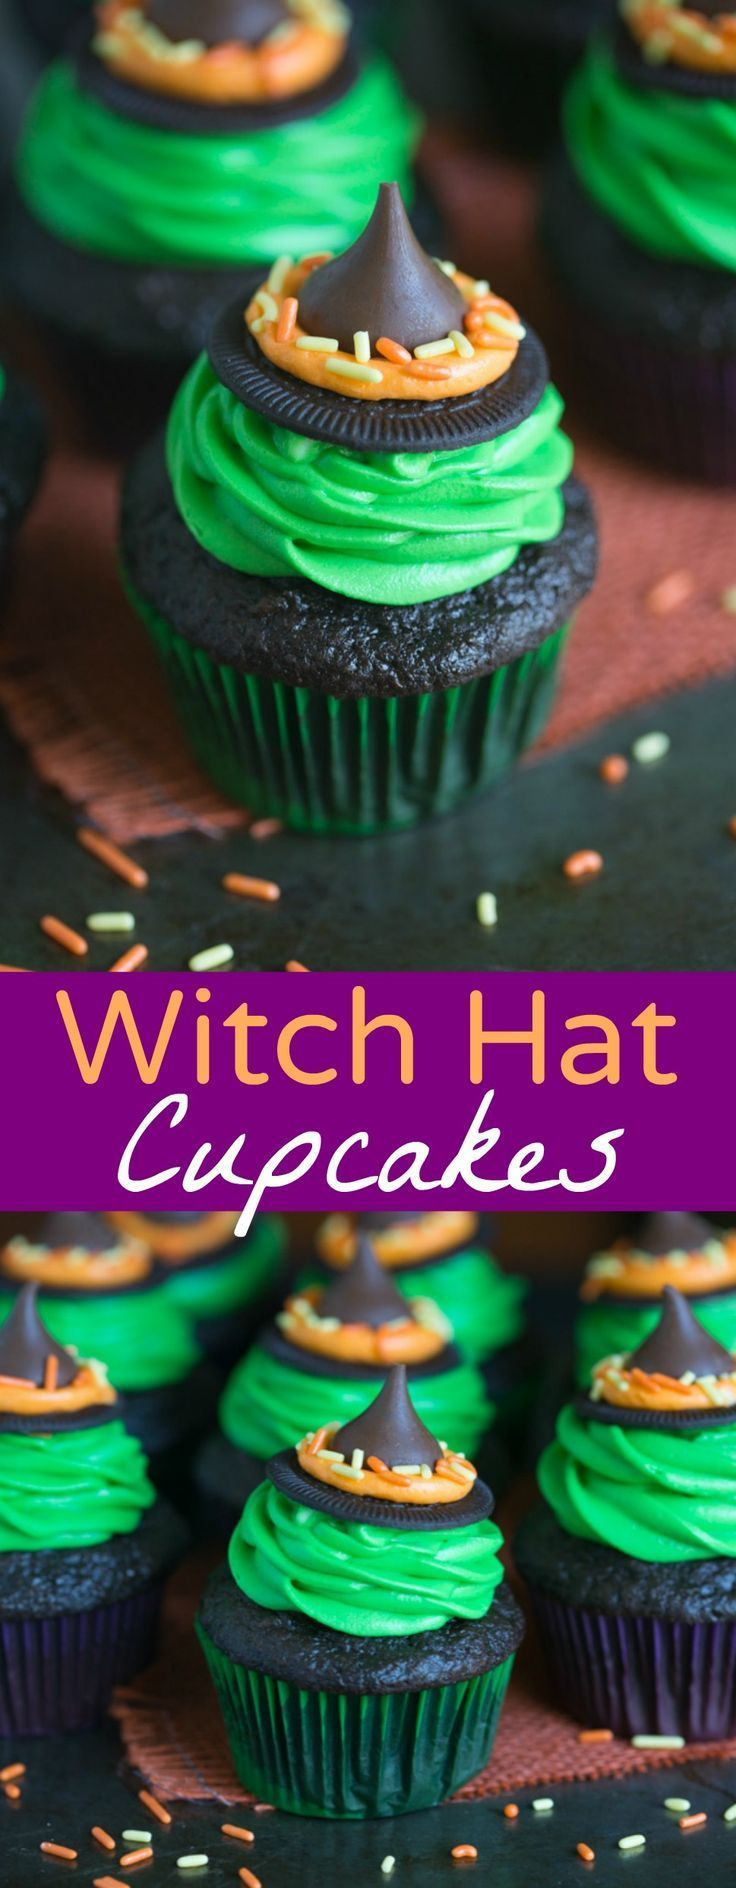 Witch Hat Cupcakes That Take Just 5 Ingredients To Make You Kids Will Love Helping